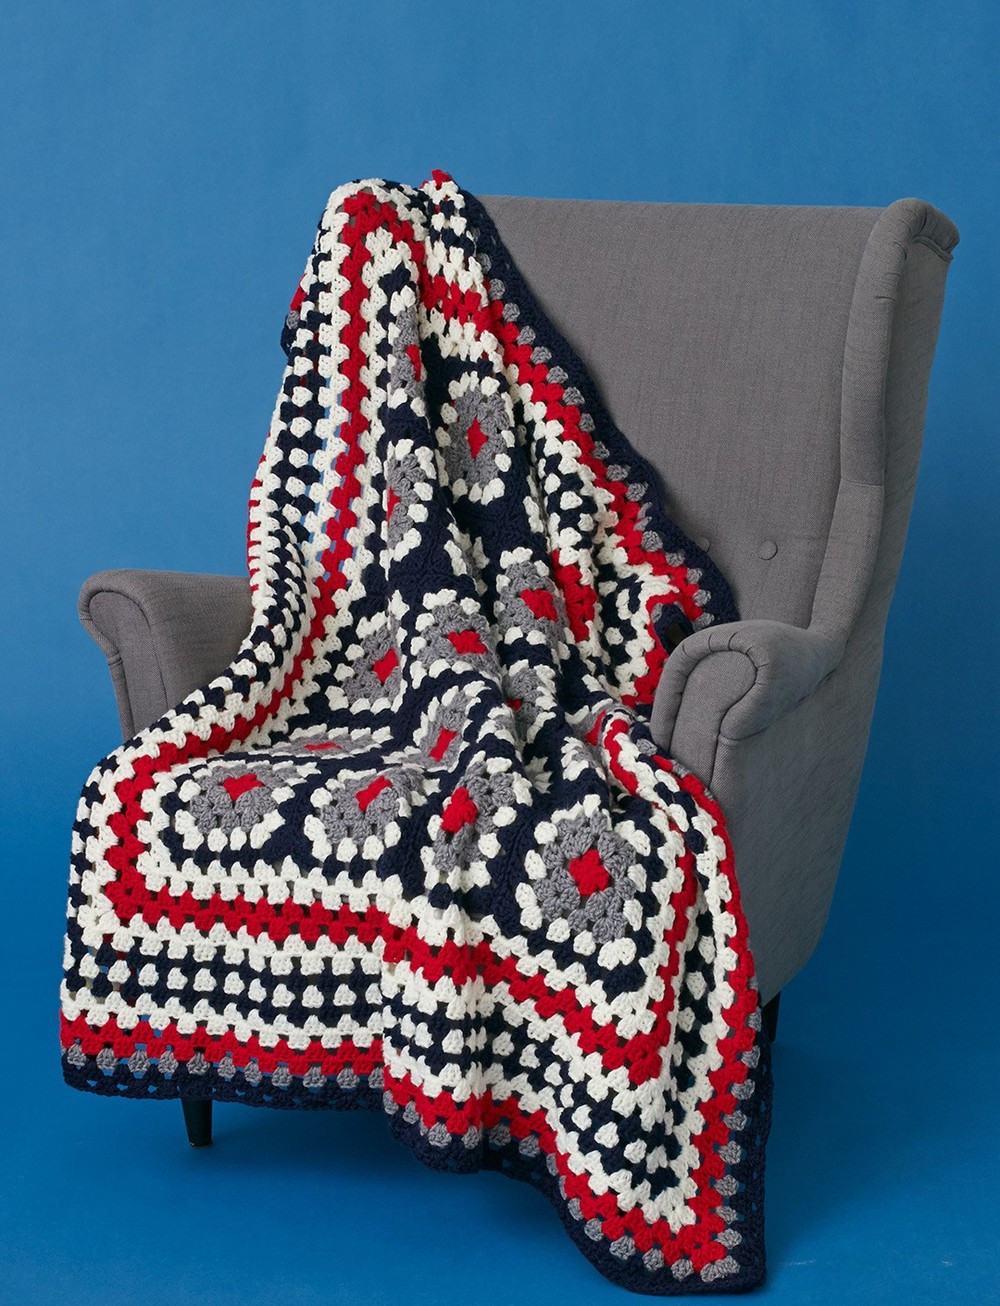 New Patriotic Crochet Granny Squares Throw Crochet Square Blanket Patterns Of Lovely 43 Pictures Crochet Square Blanket Patterns